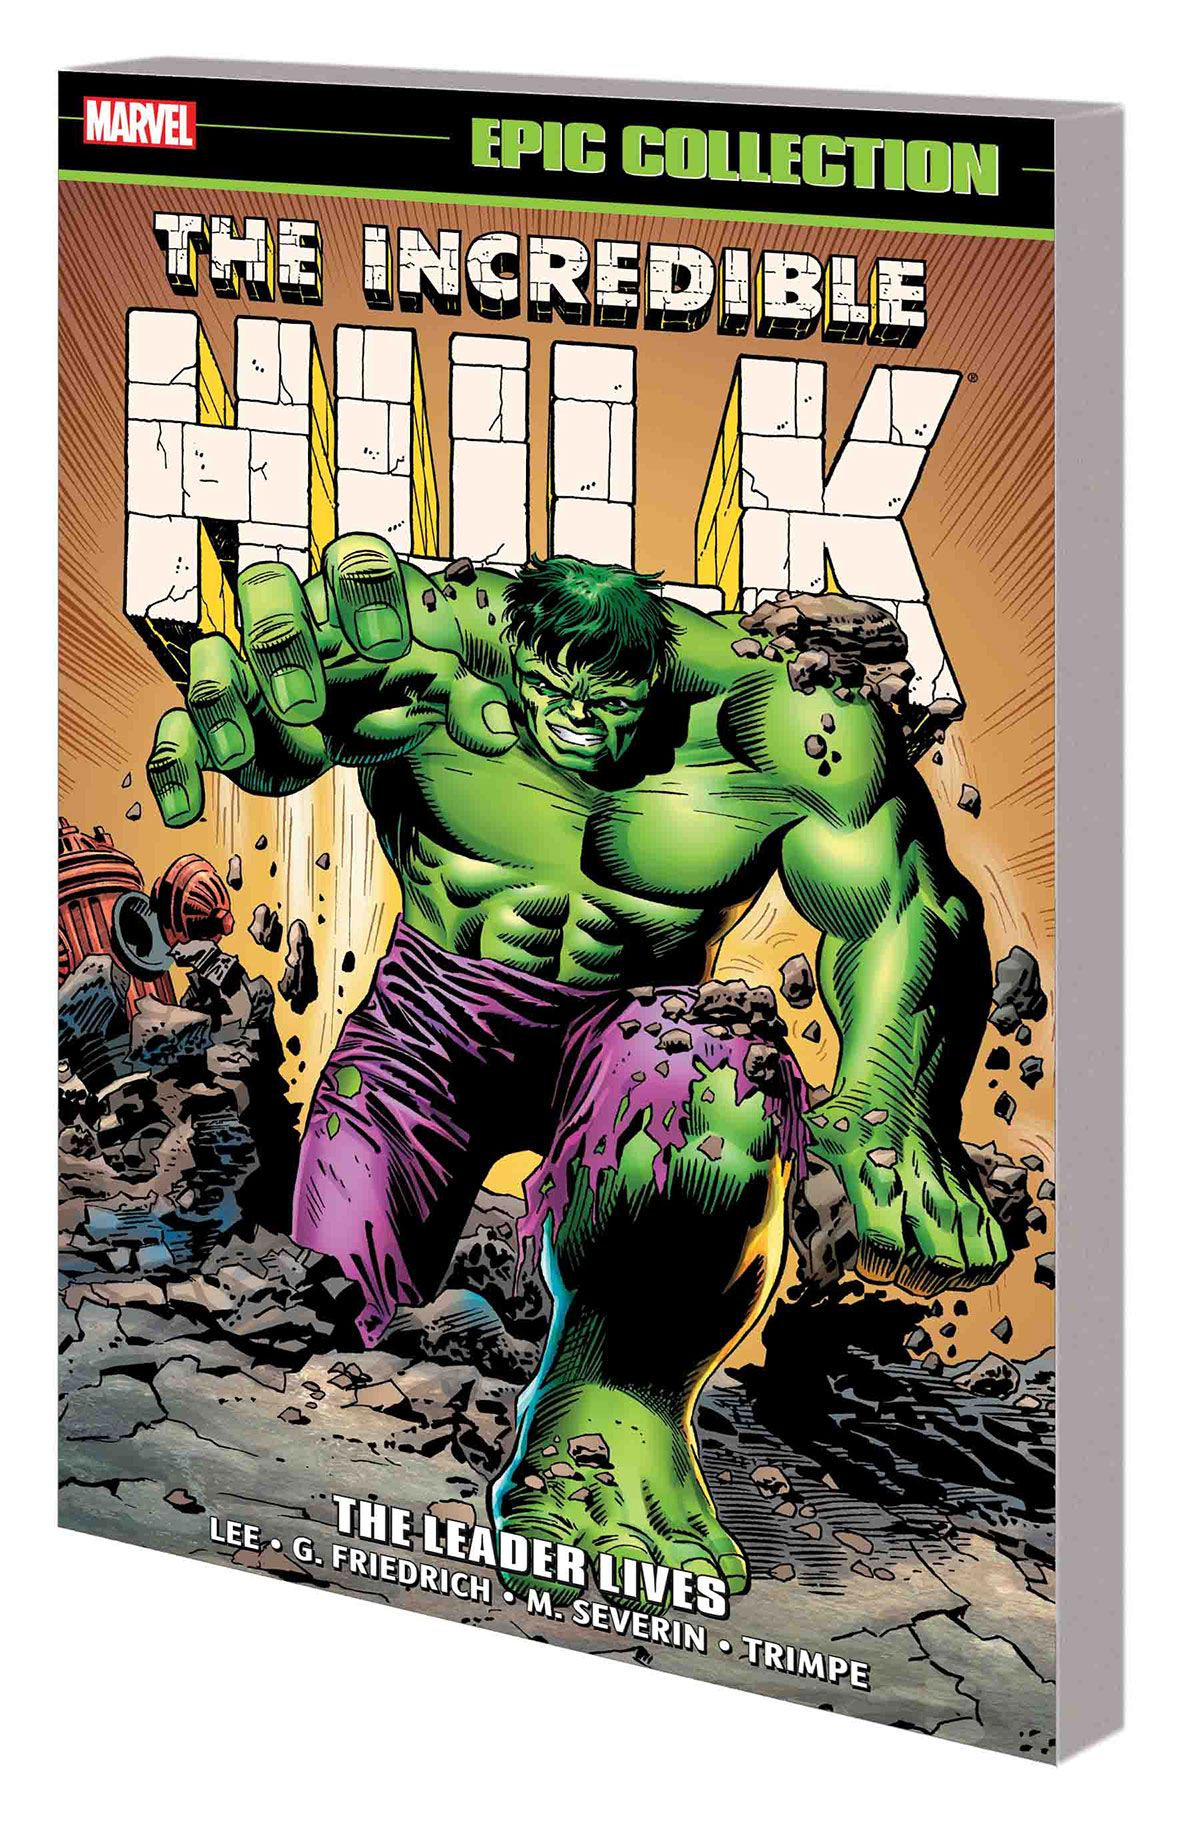 INCREDIBLE HULK EPIC COLLECTION: THE LEADER LIVES TPB